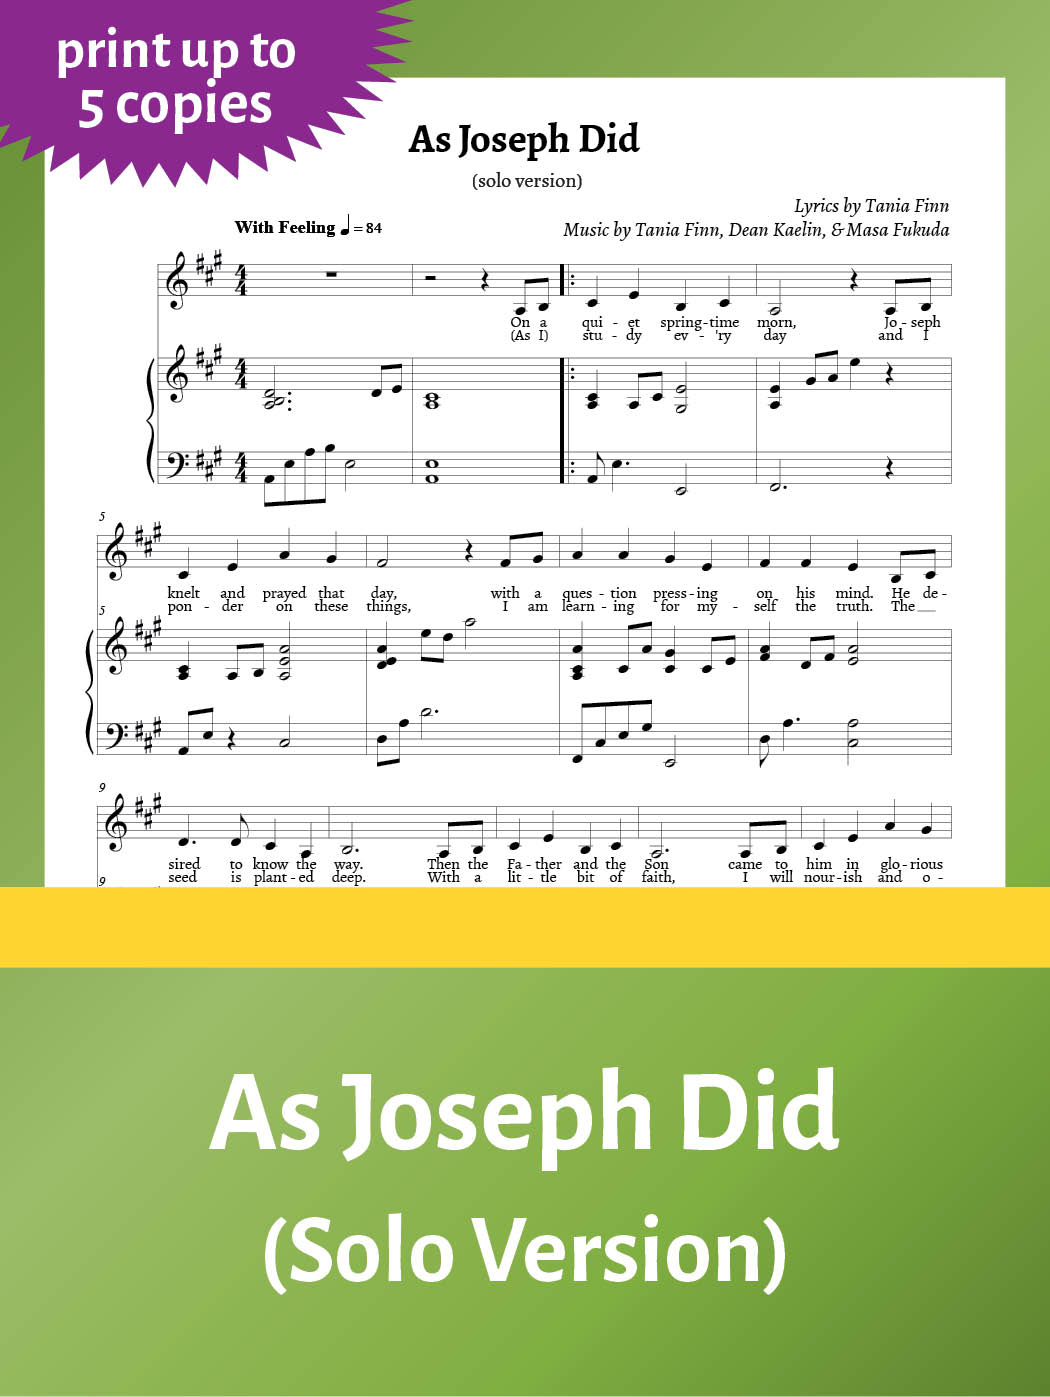 As Joseph Did – Sheet Music – solo – up to 5 copies